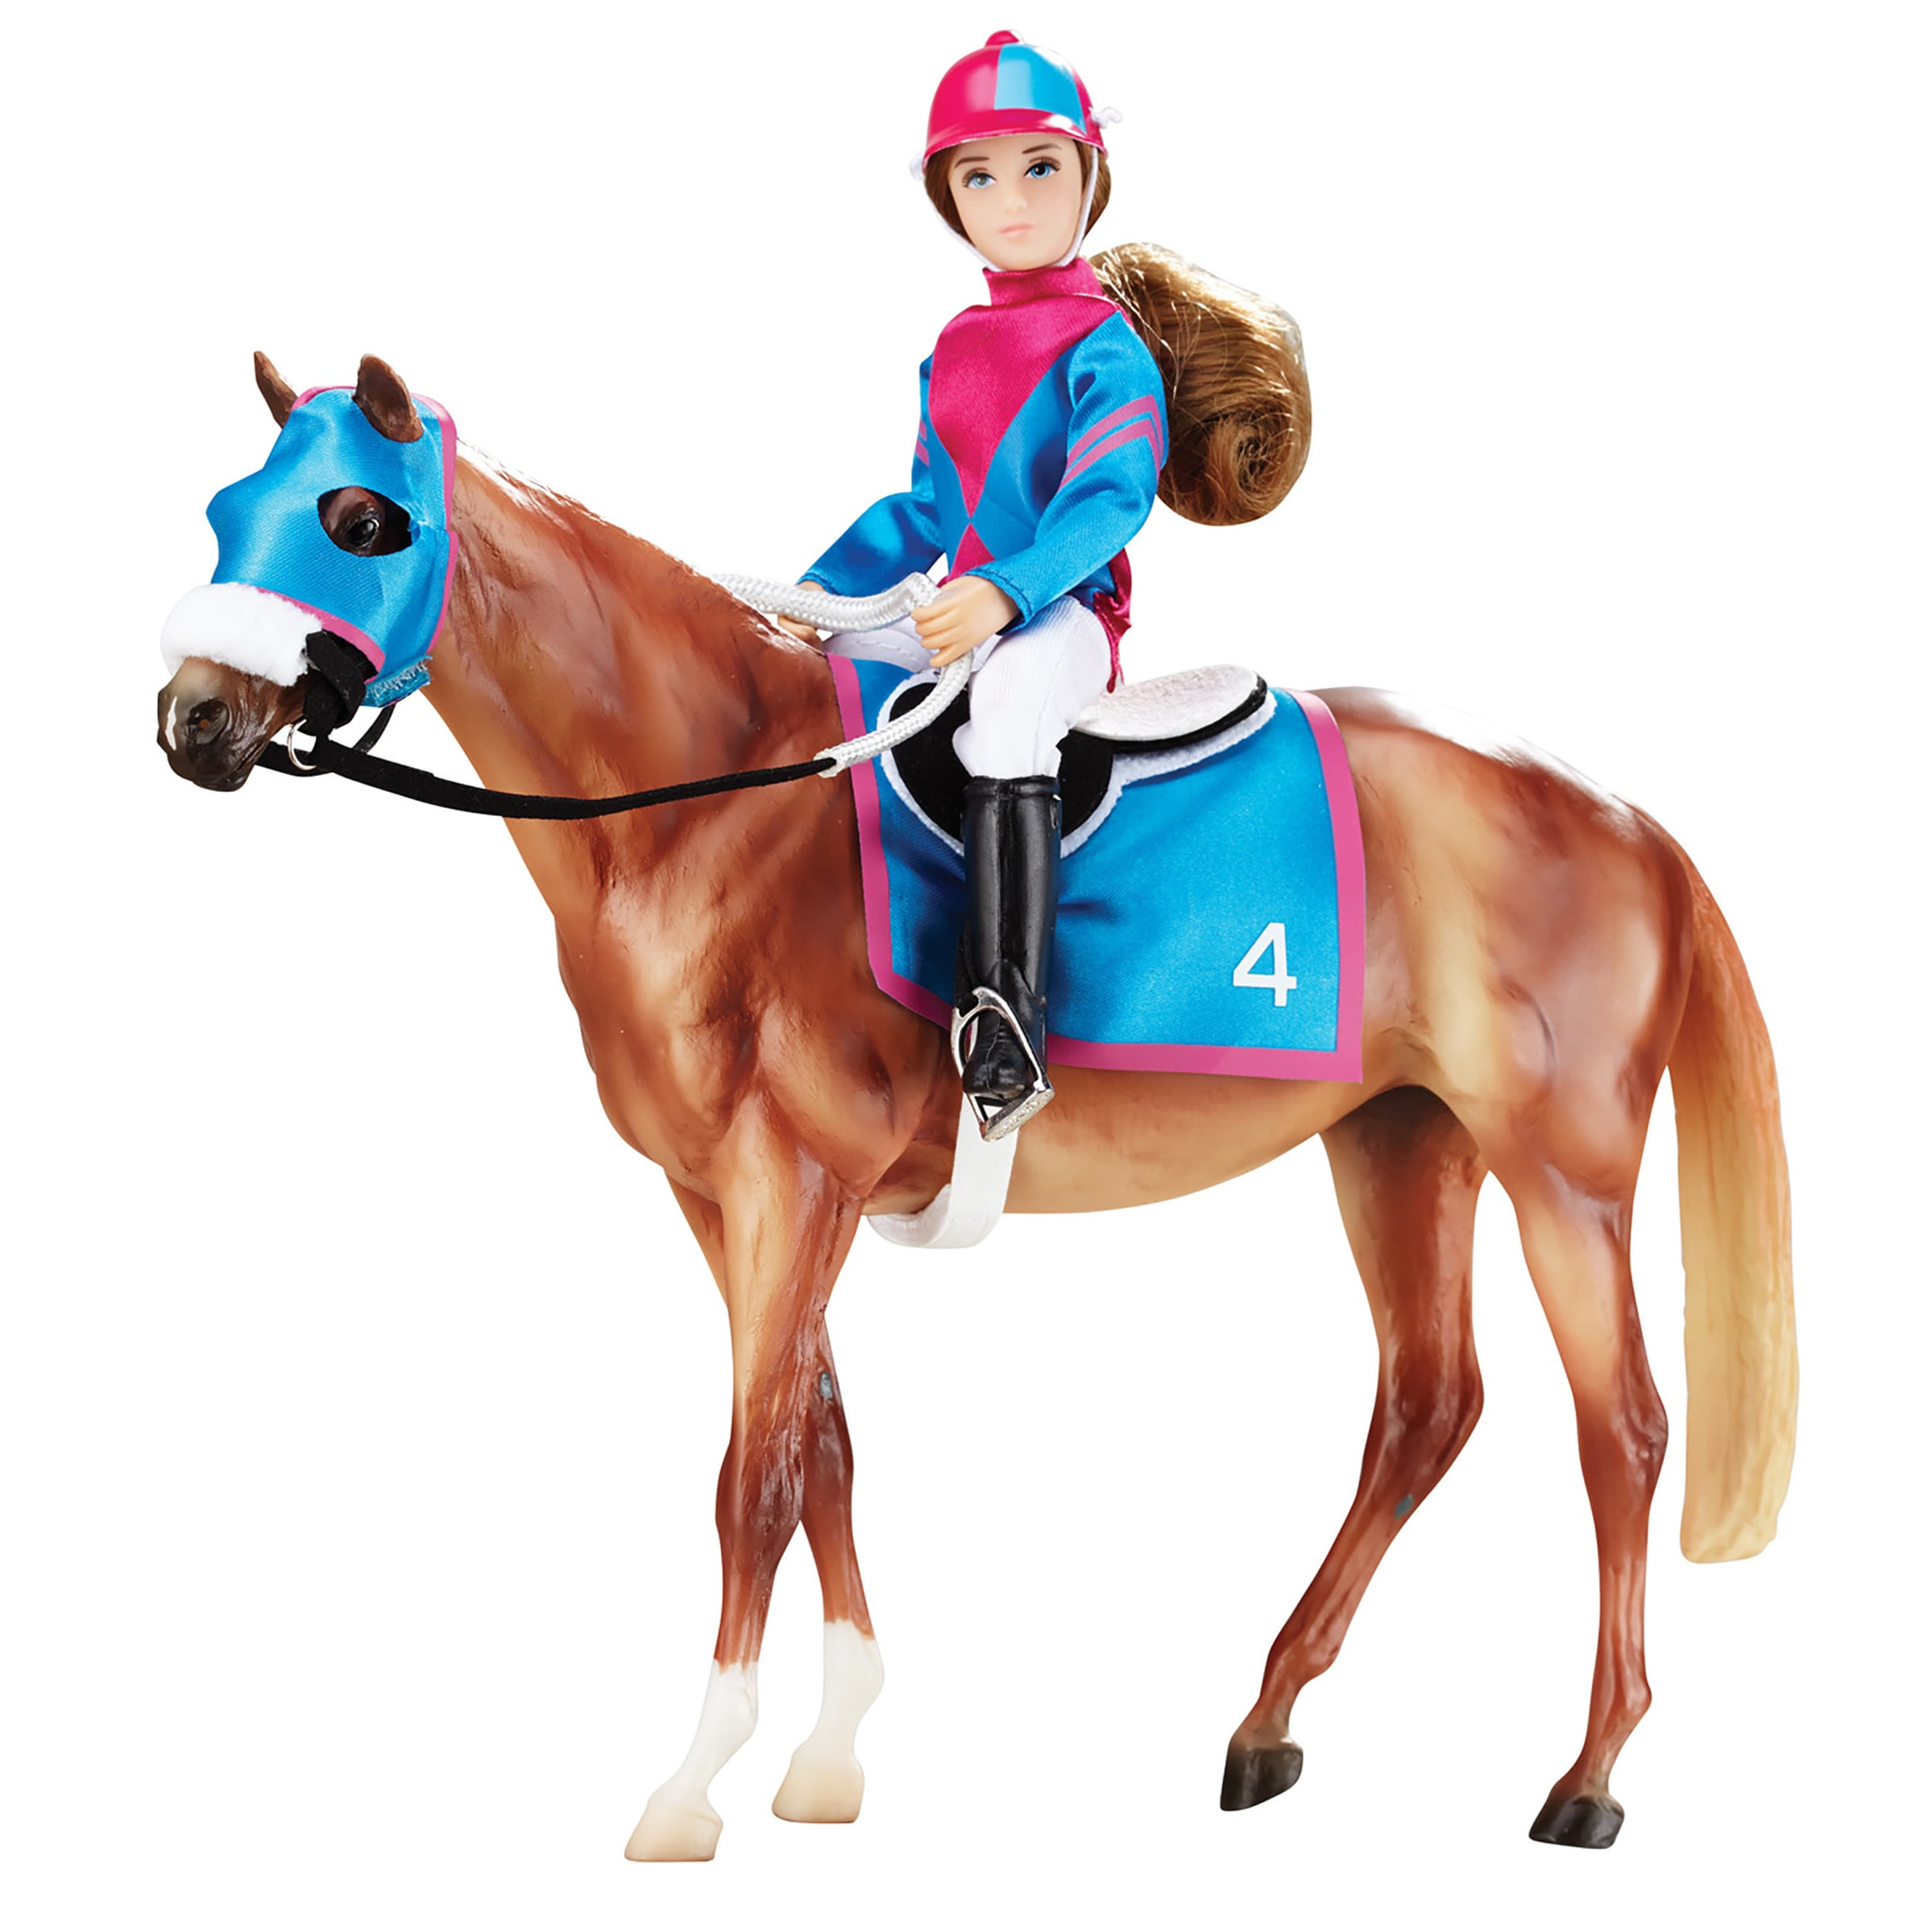 Reeves Breyer Let's Go Racing Plastic Model Horse and Dol...